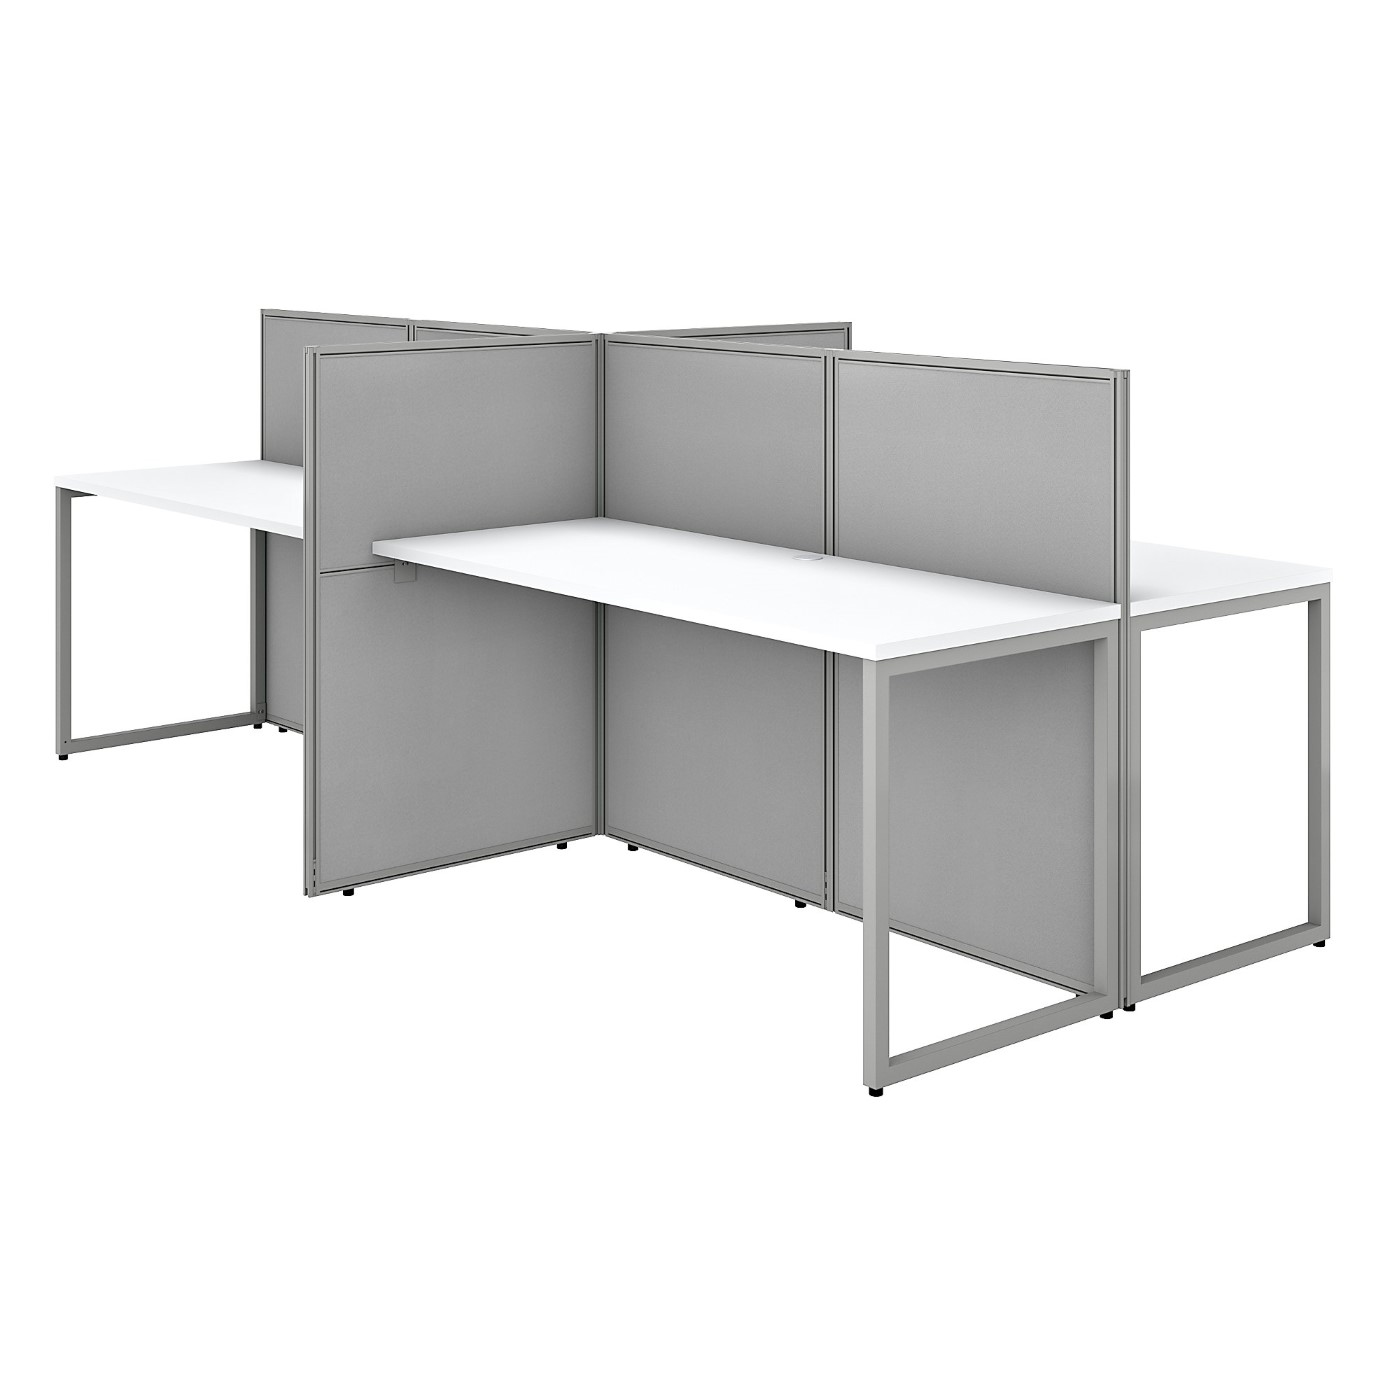 BUSH BUSINESS FURNITURE EASY OFFICE 60W 4 PERSON CUBICLE DESK WORKSTATION WITH 45H PANELS. FREE SHIPPING SALE DEDUCT 10% MORE ENTER '10percent' IN COUPON CODE BOX WHILE CHECKING OUT. ENDS 5-31-20.